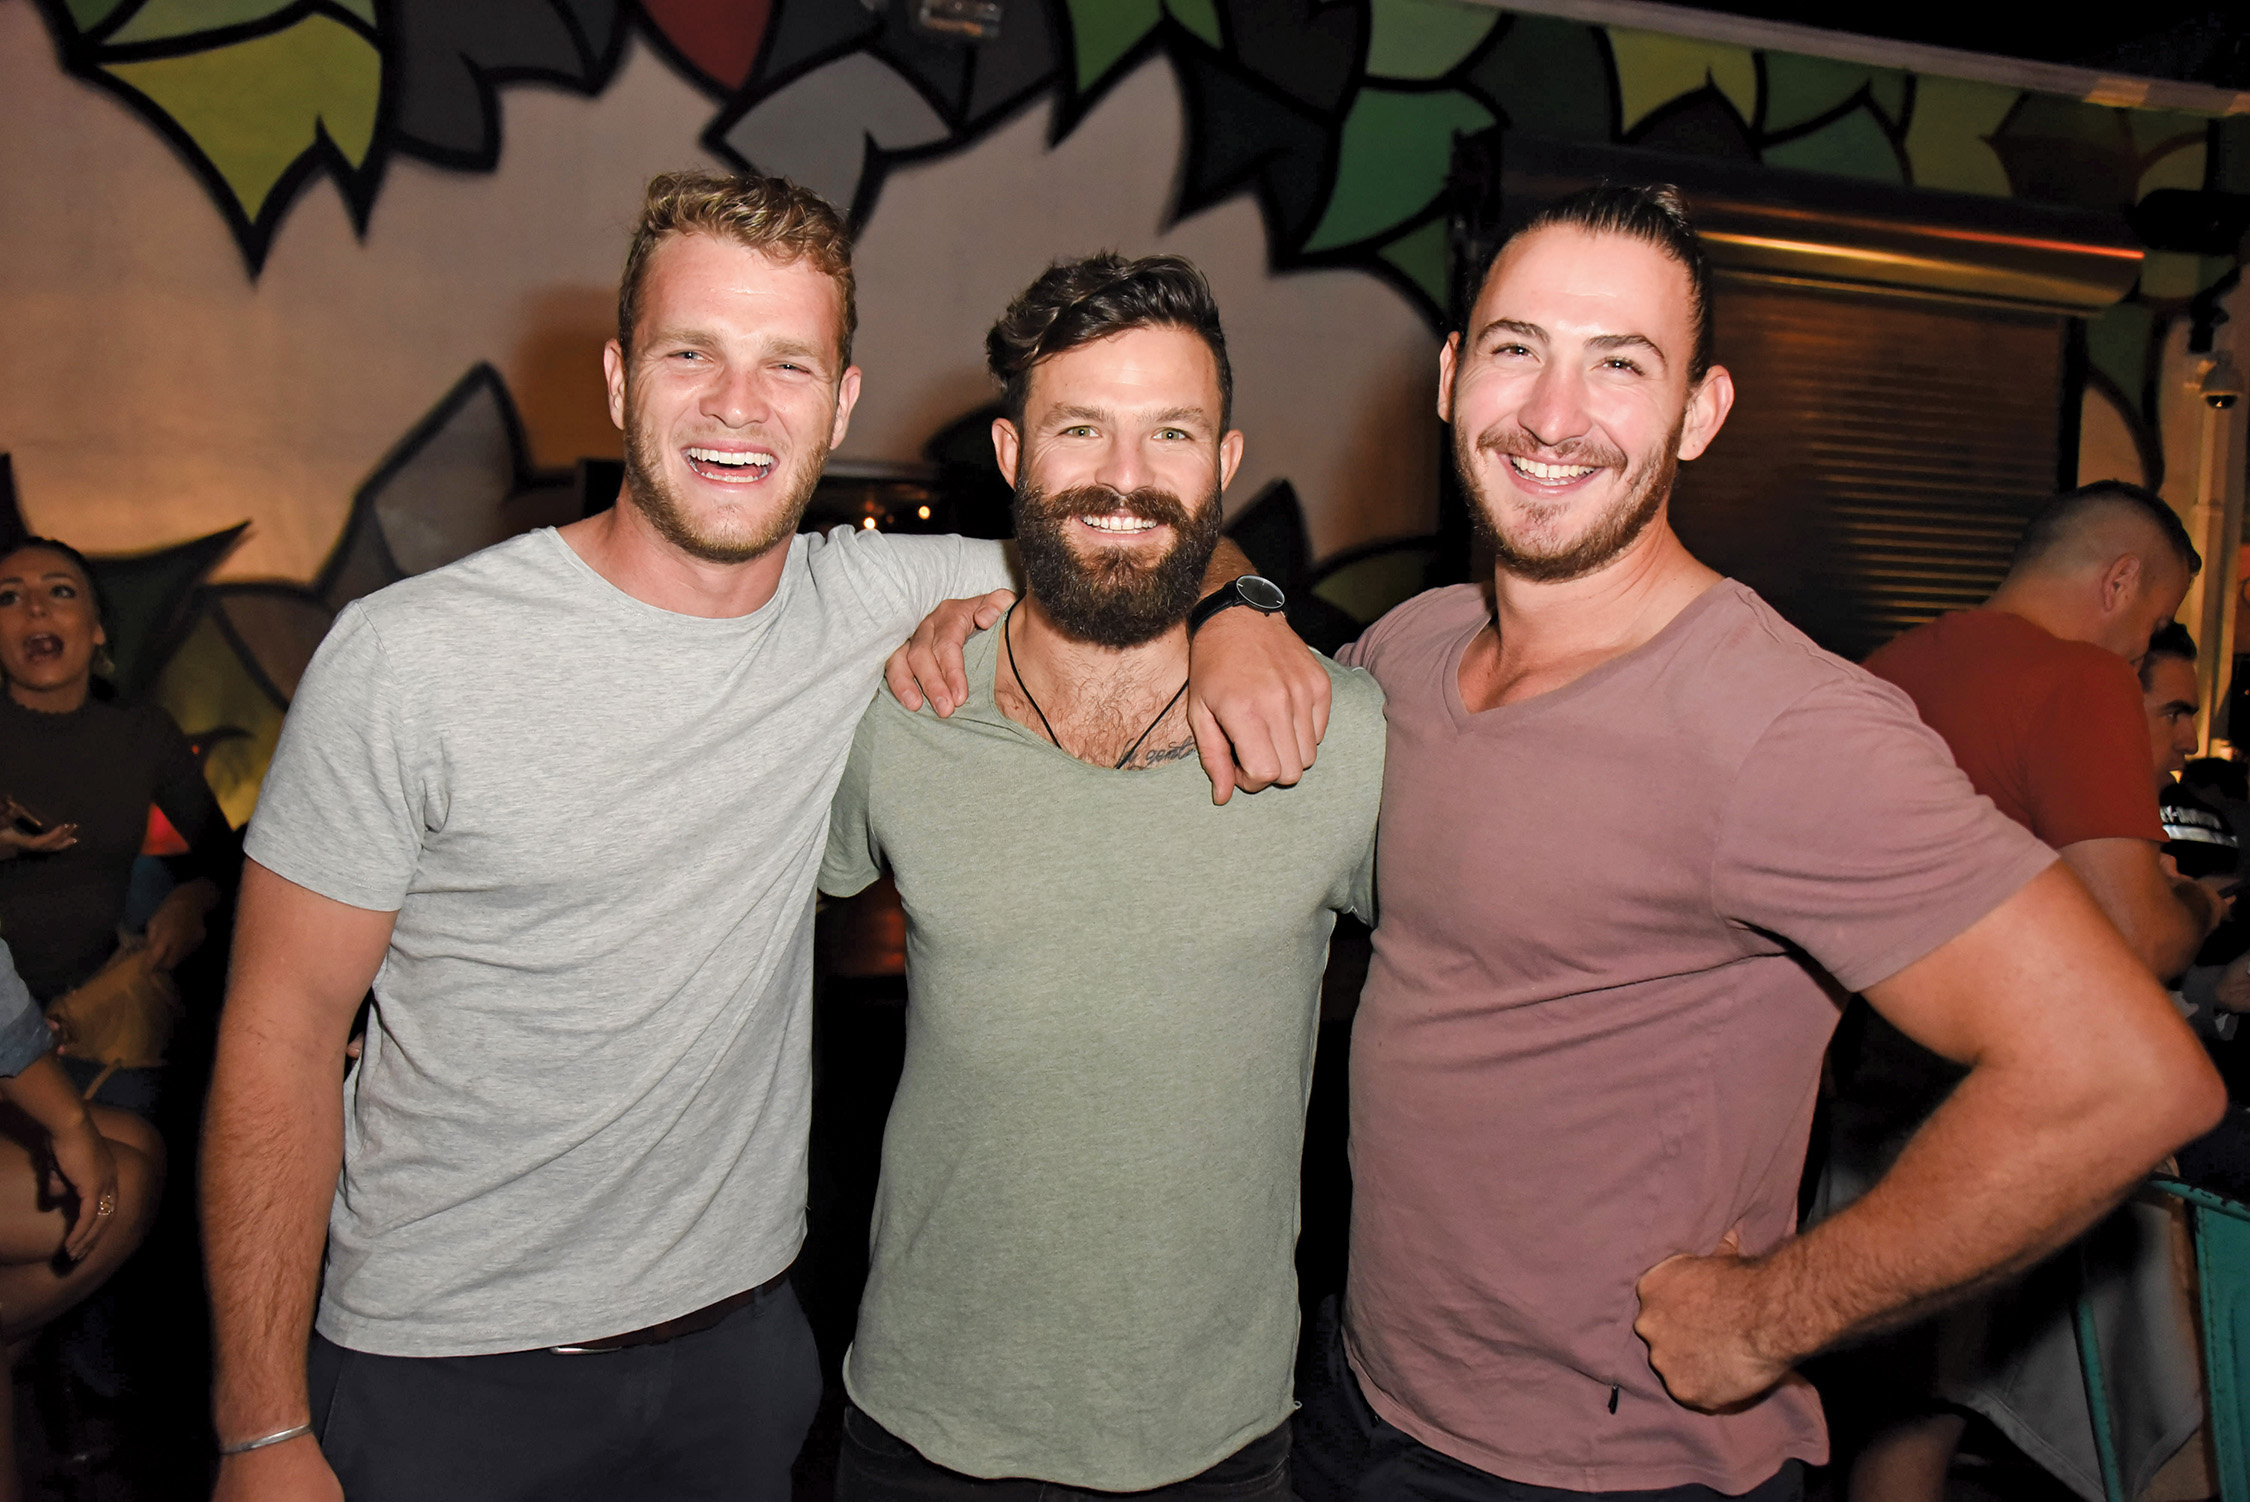 Jason-Clarke-Benjamin-Kirk-and-Jake-Dunn-Around-Town-The-Seen-Fort-Lauderdale-Venice-Magazine-Michele-Eve-Sandberg